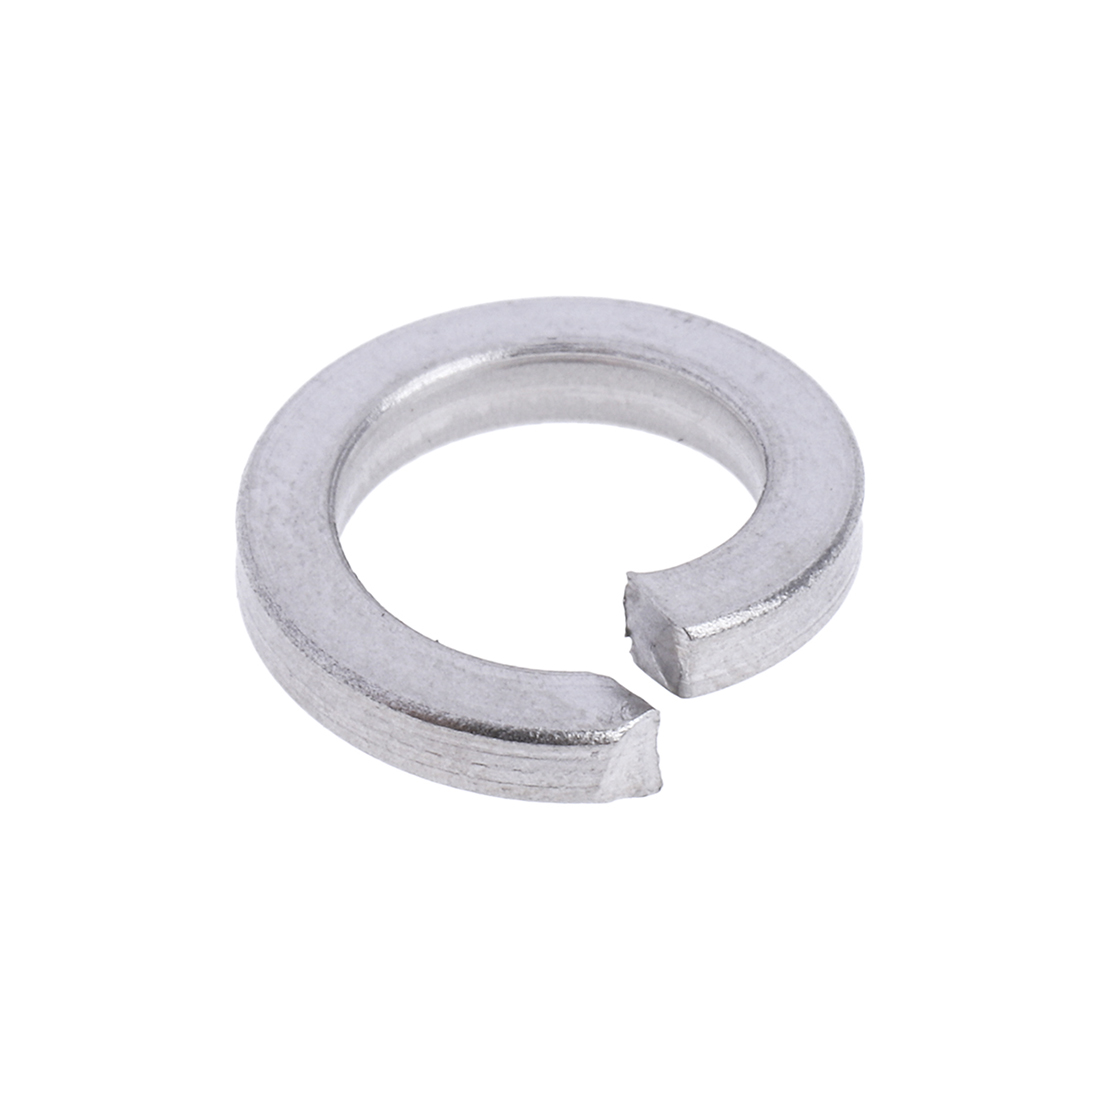 A2 stainless steel spring washer,M8 - 100 Pack